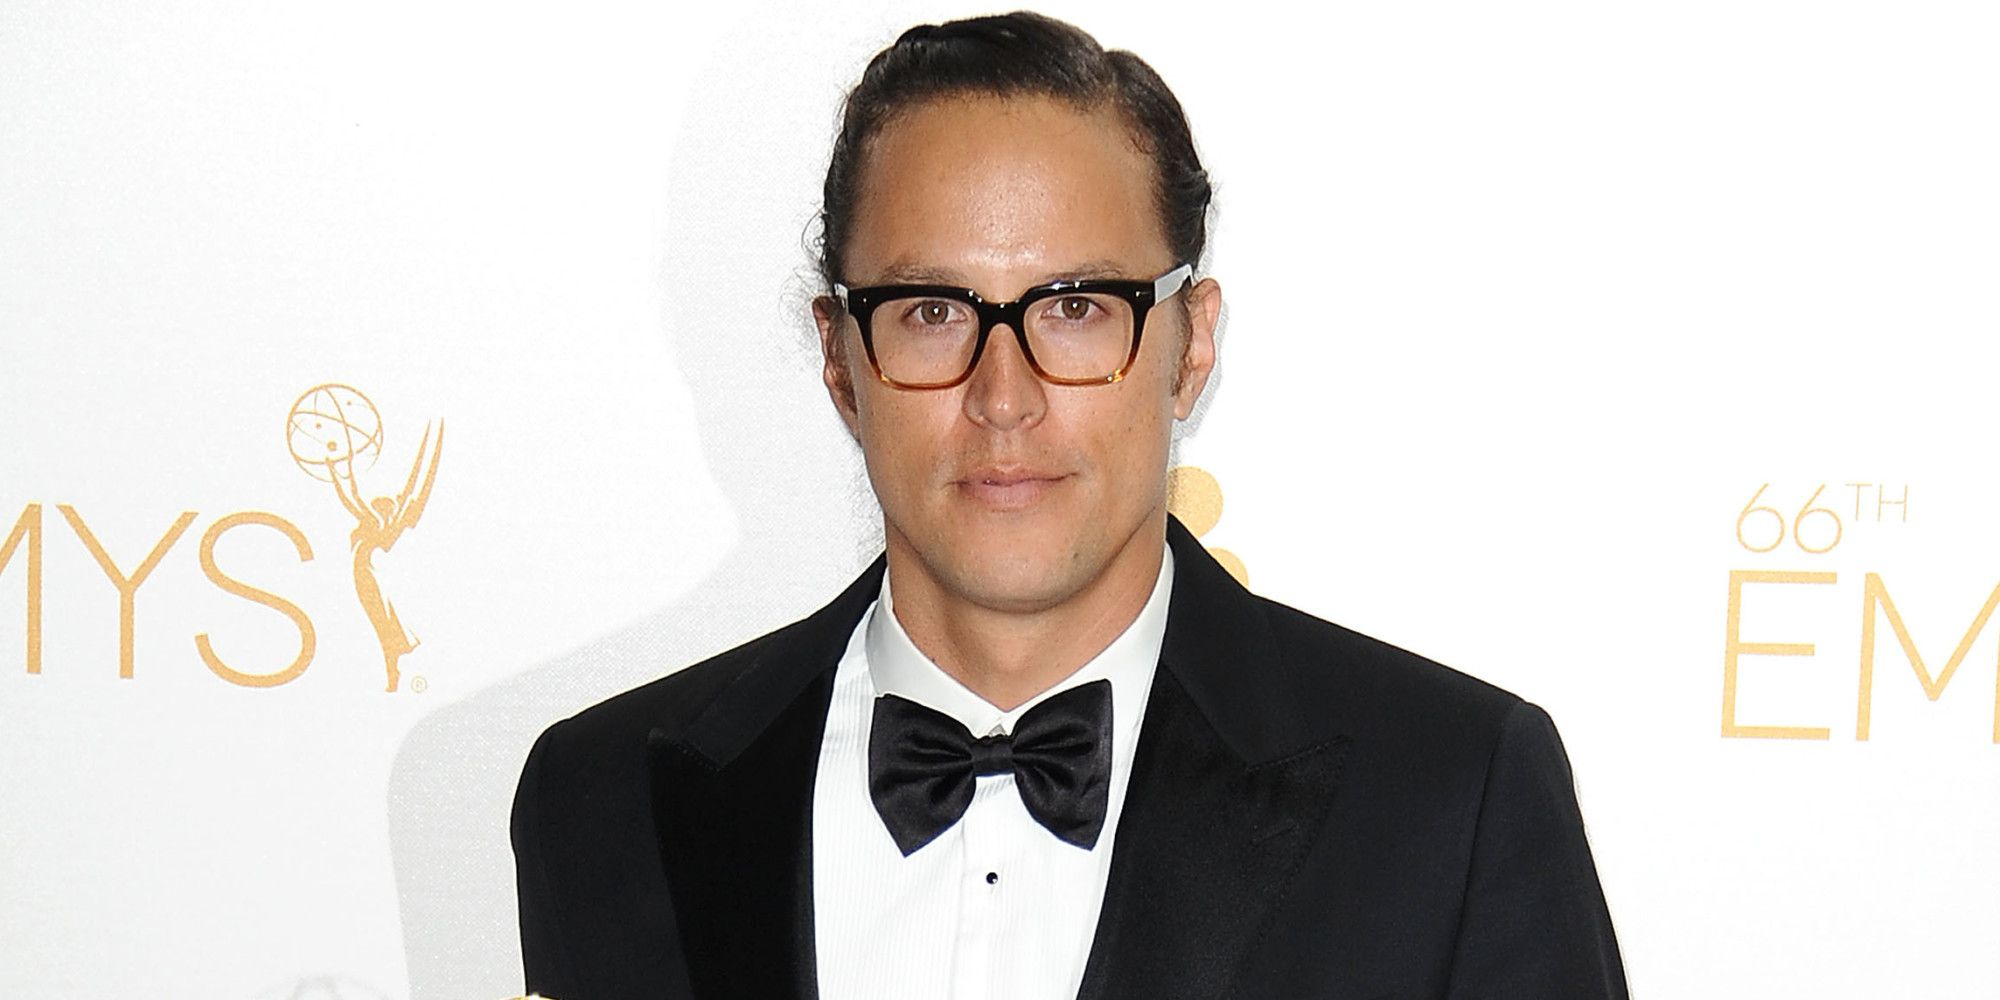 'True Detective' Director Will Make TV Series 'The Alienist'